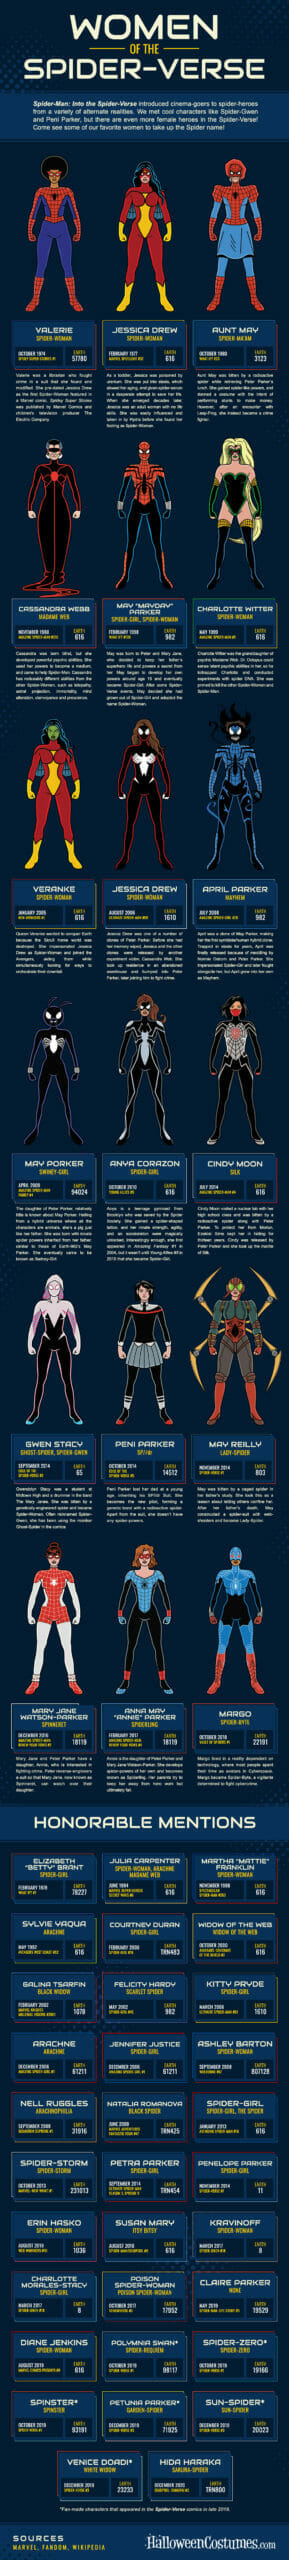 Women of the Spider-Verse [infographic]